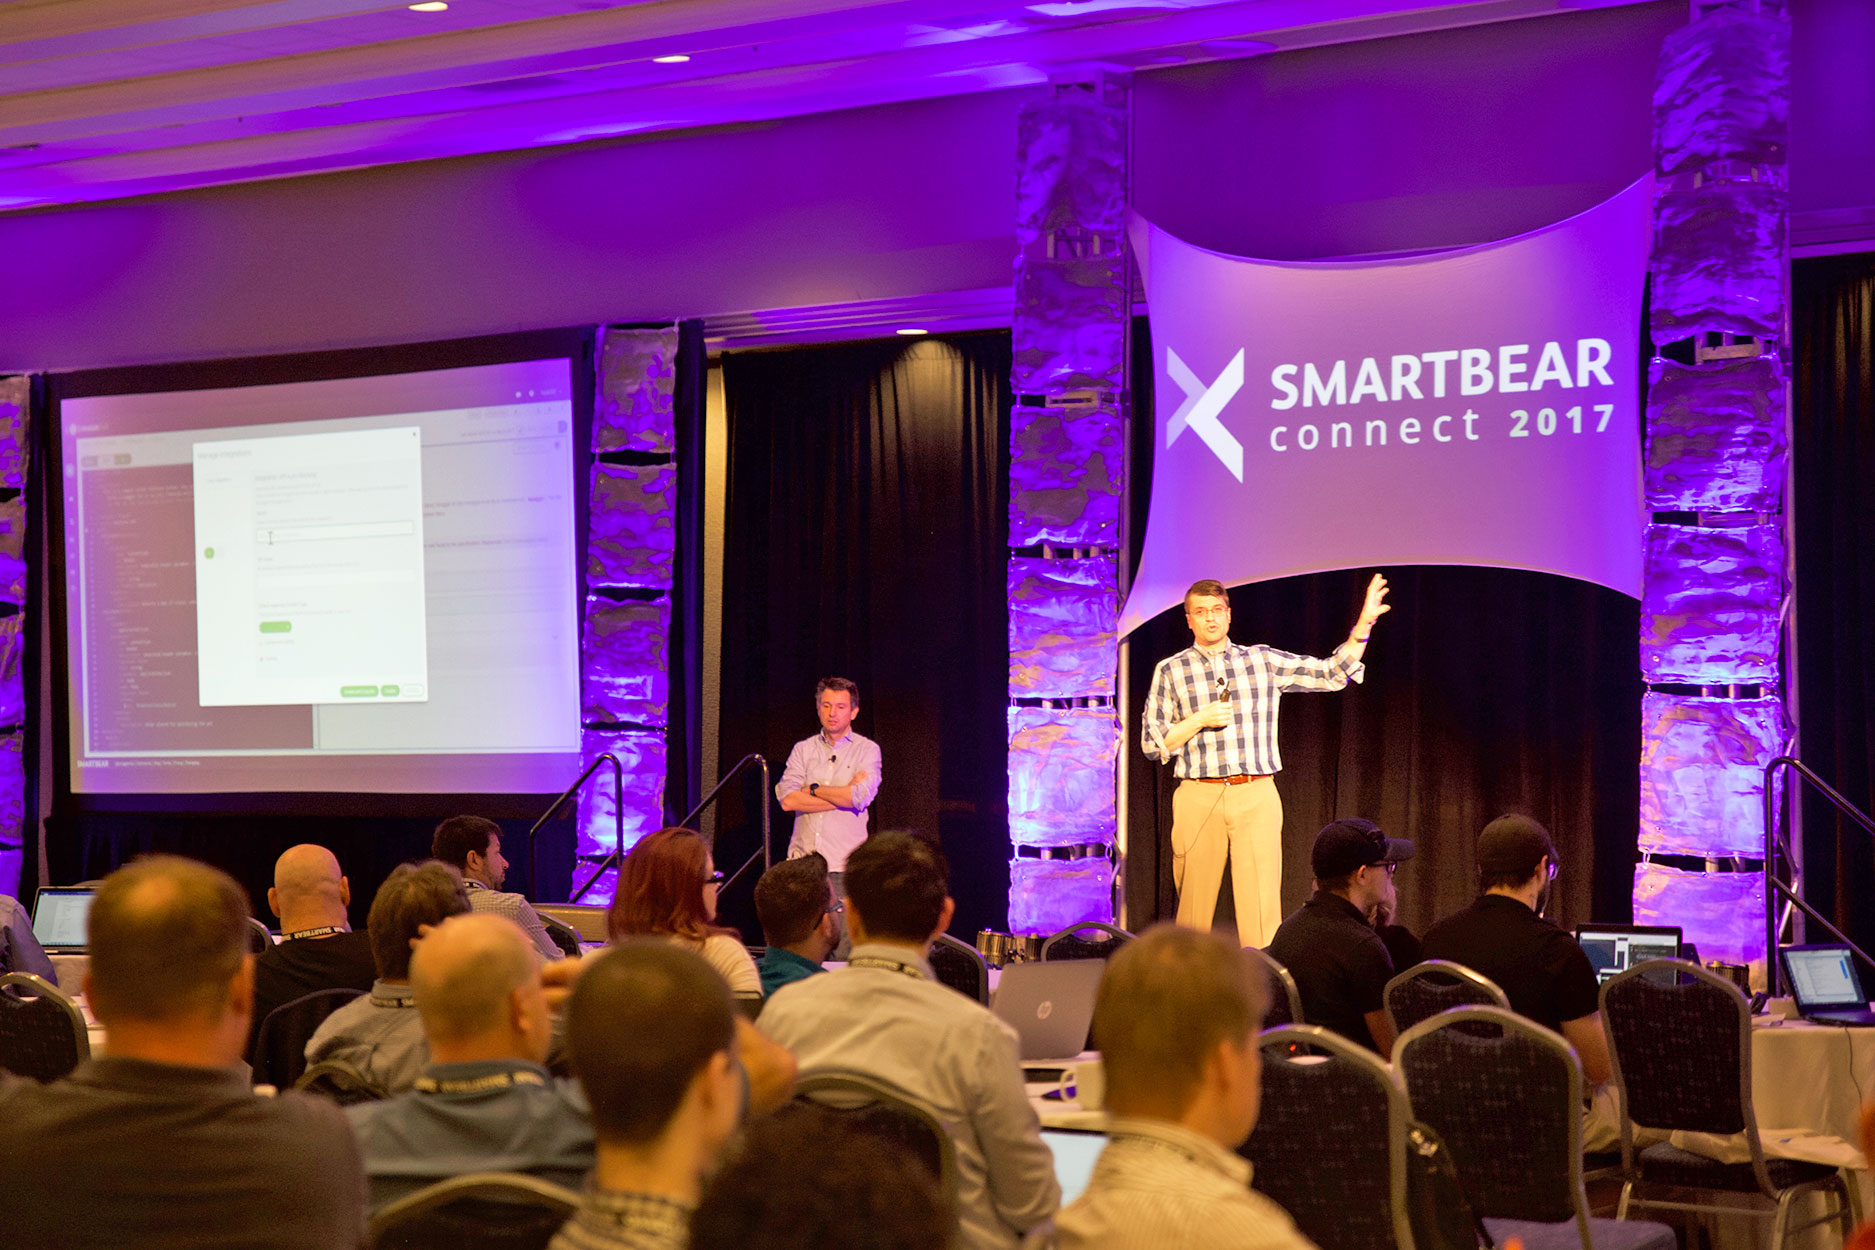 Smartbear Connect 2017 Sept 12 13 2017 In Boston Ma